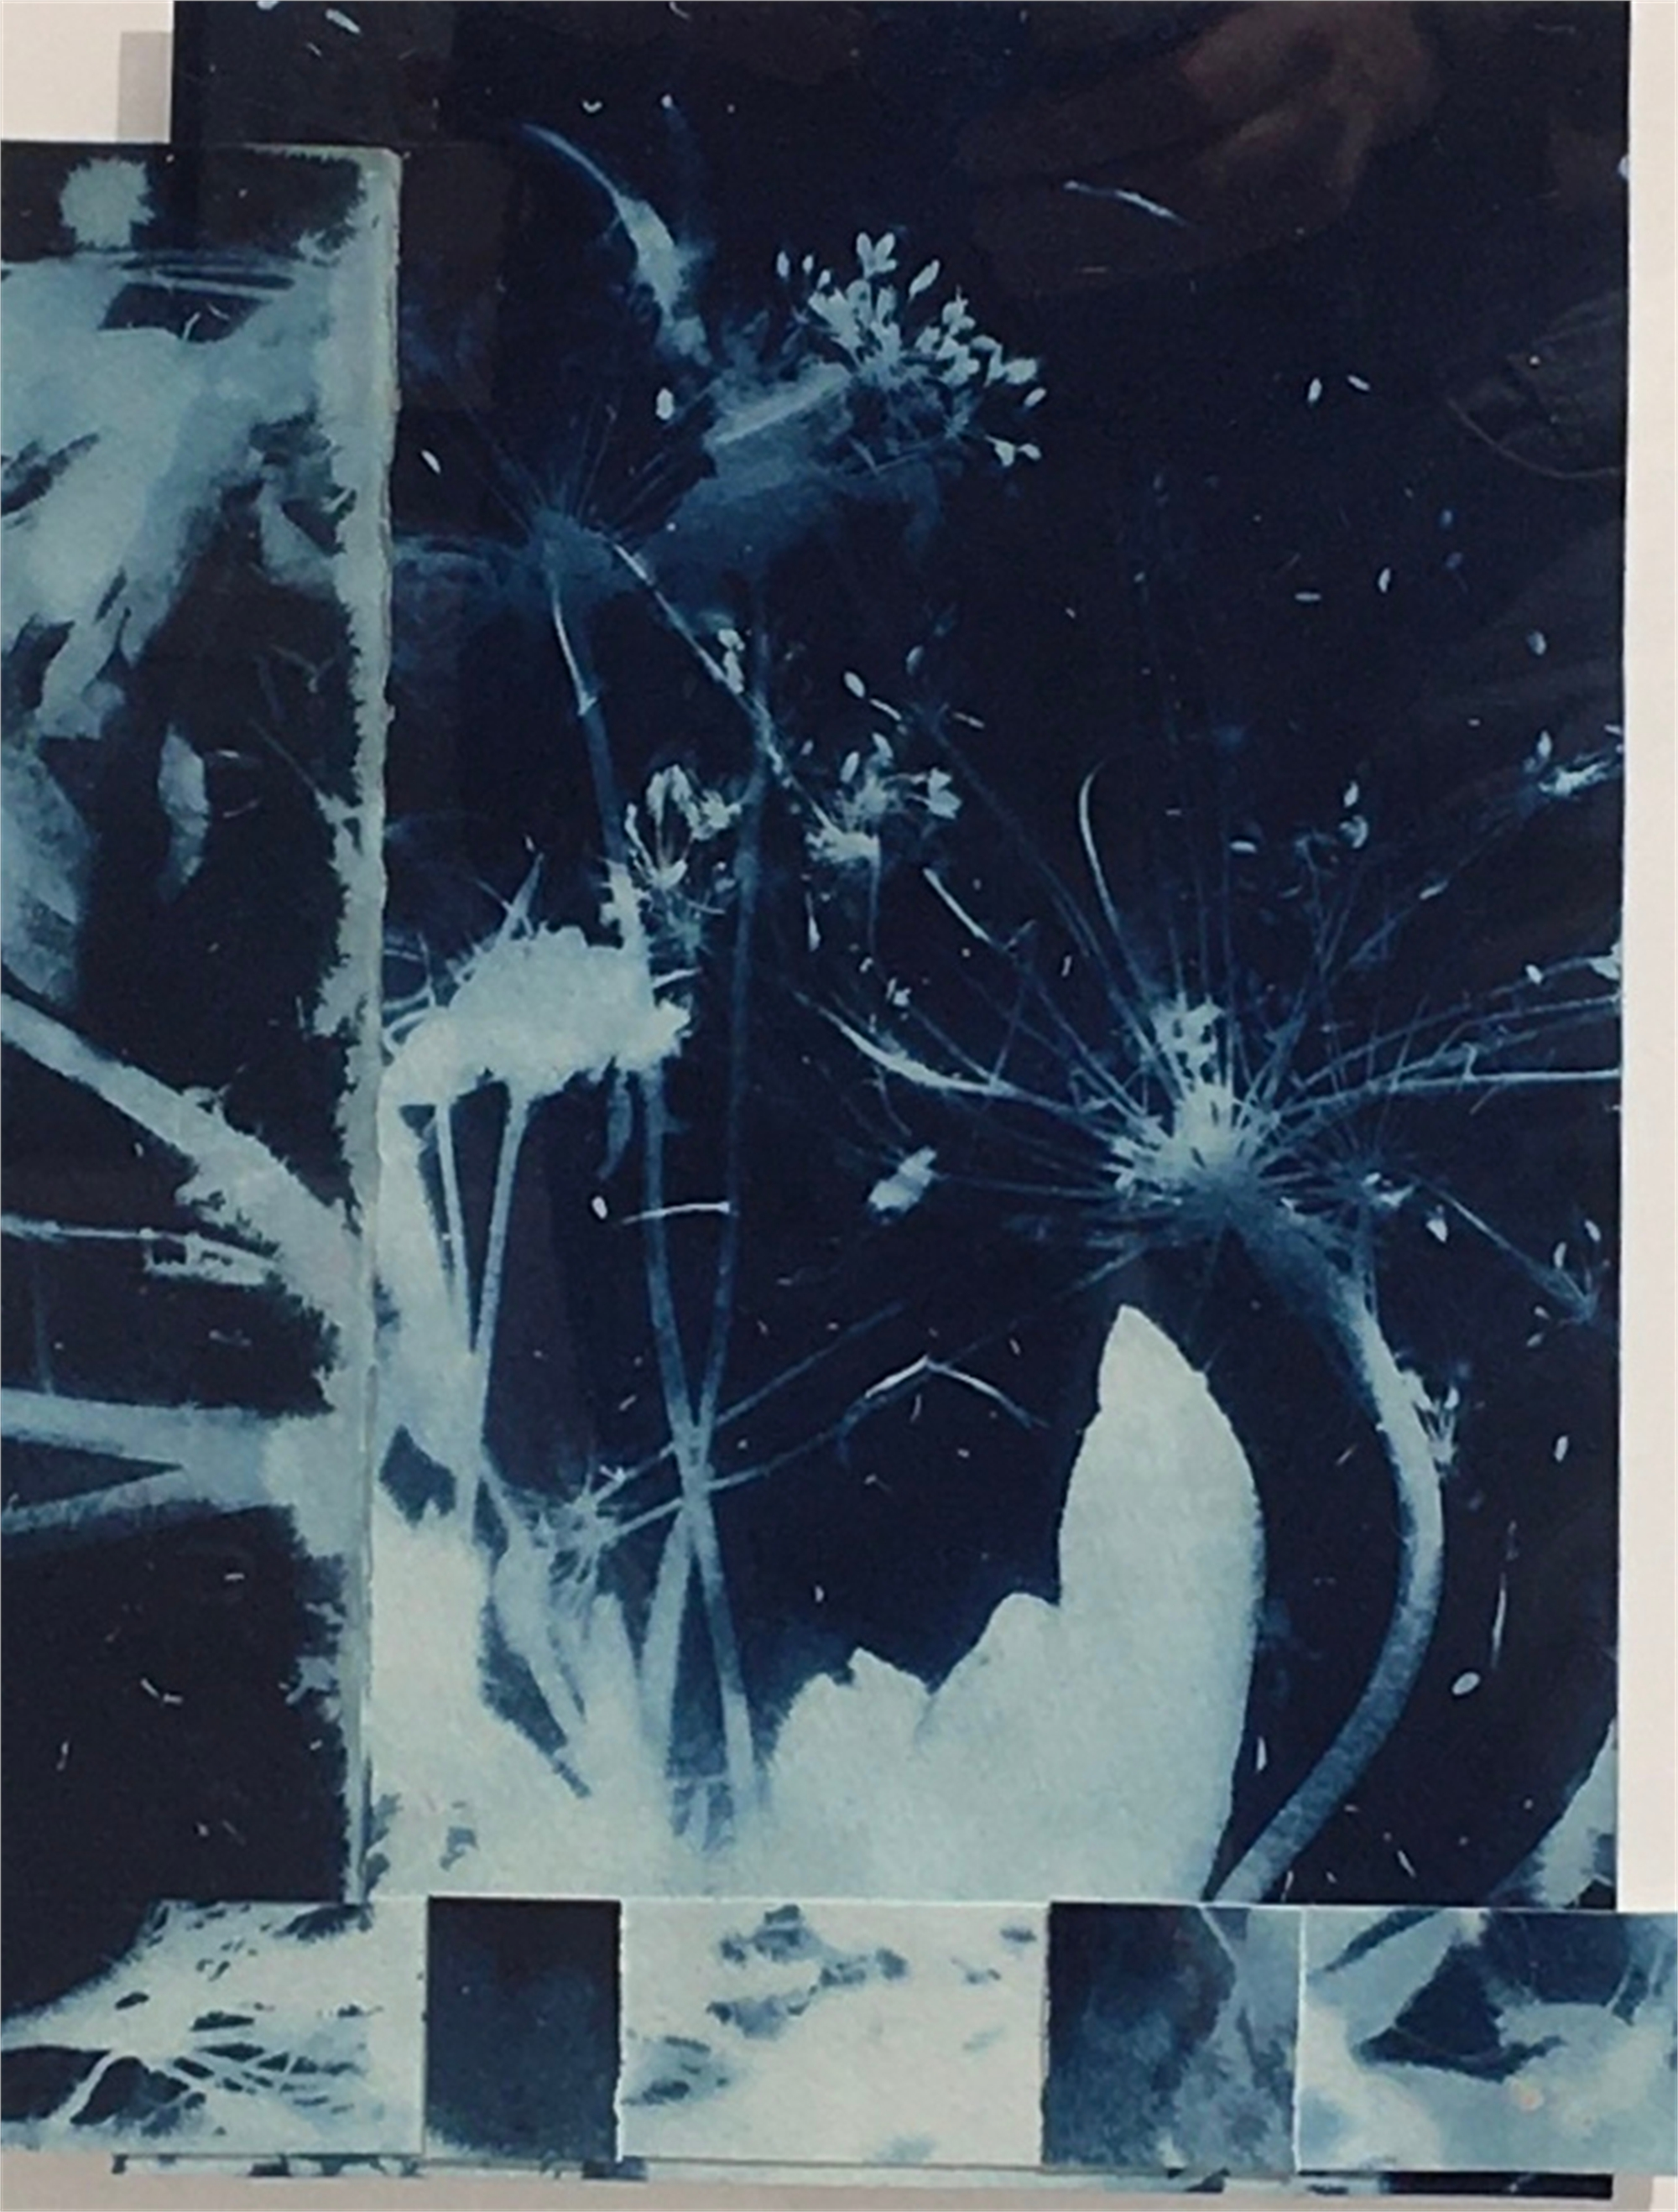 Cyanotype Collage #1 by Colleen Metzger